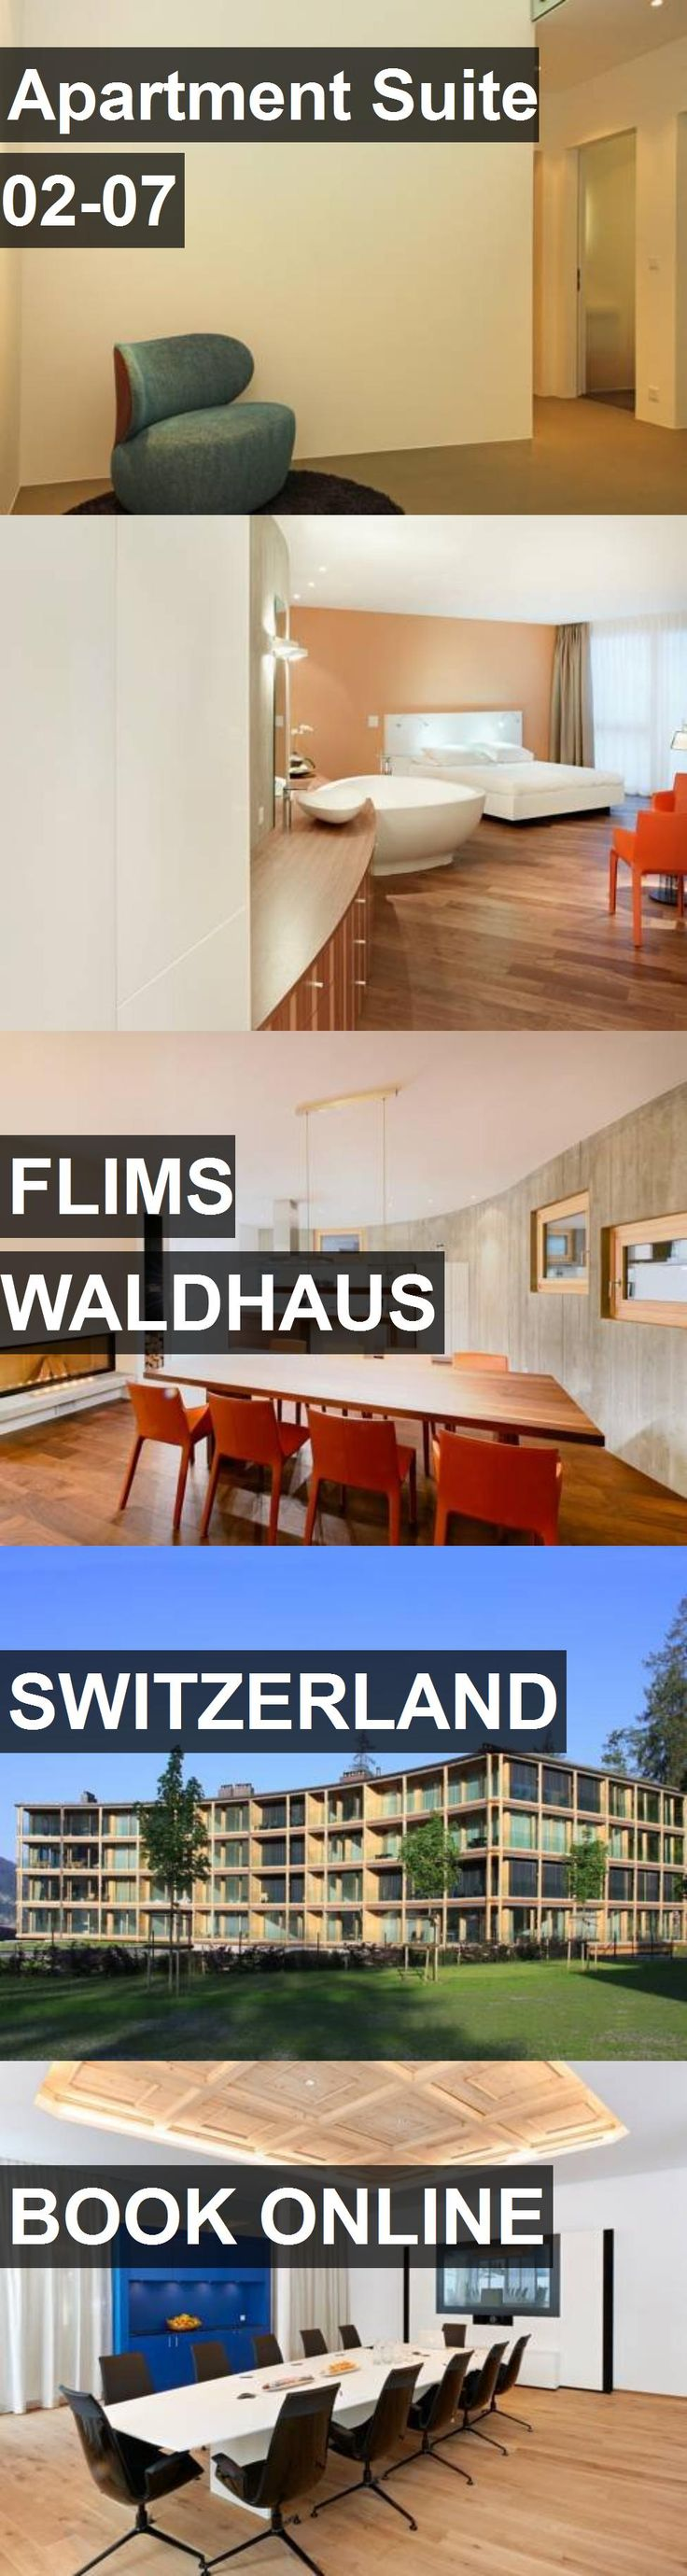 Apartment Suite 02-07 in Flims Waldhaus, Switzerland. For more information, photos, reviews and best prices please follow the link. #Switzerland #FlimsWaldhaus #travel #vacation #apartment